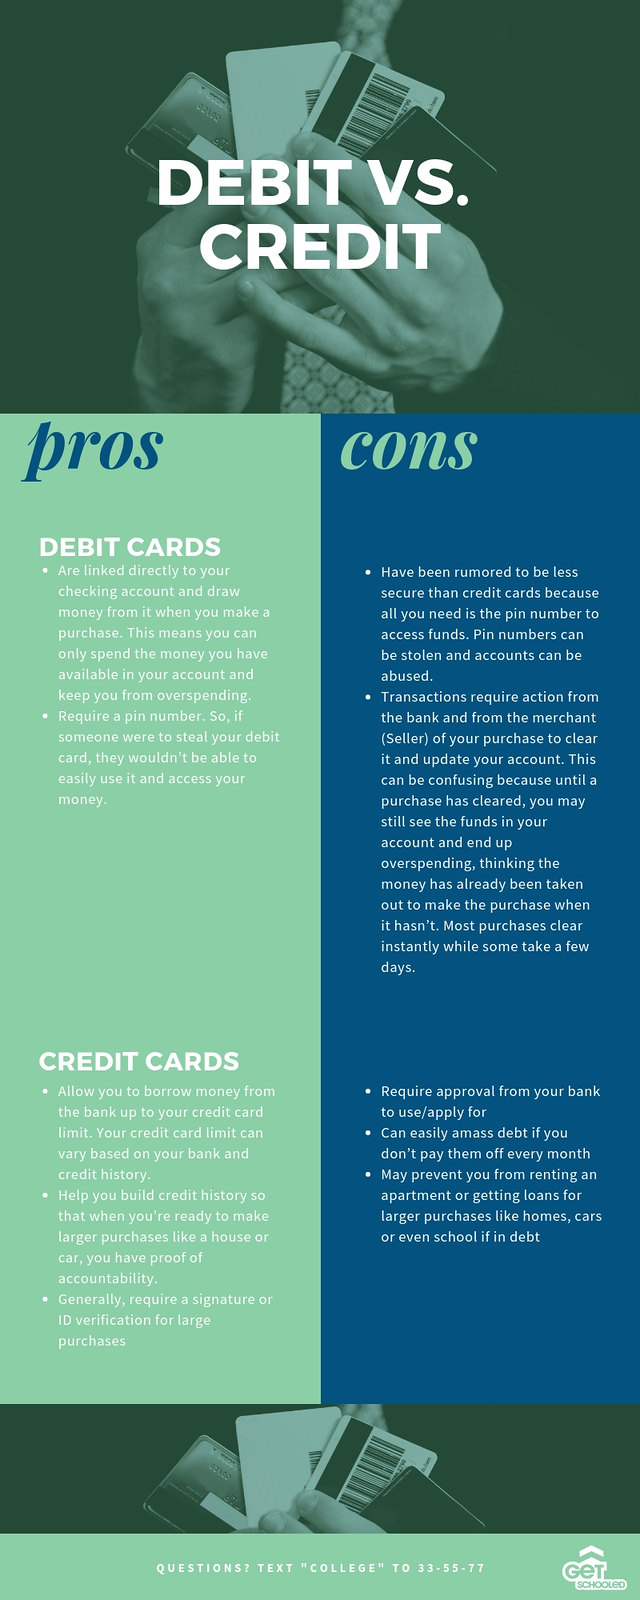 Credit vs debit informational flyer